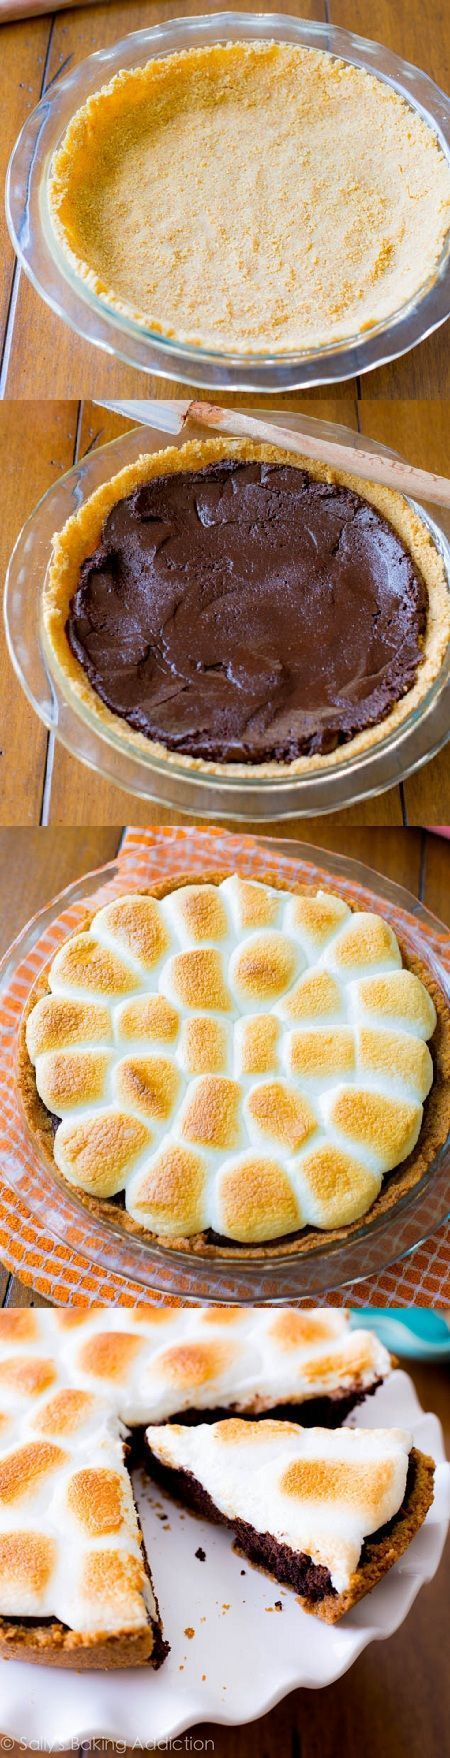 S'mores on top of a brownie pie – no campfire required!